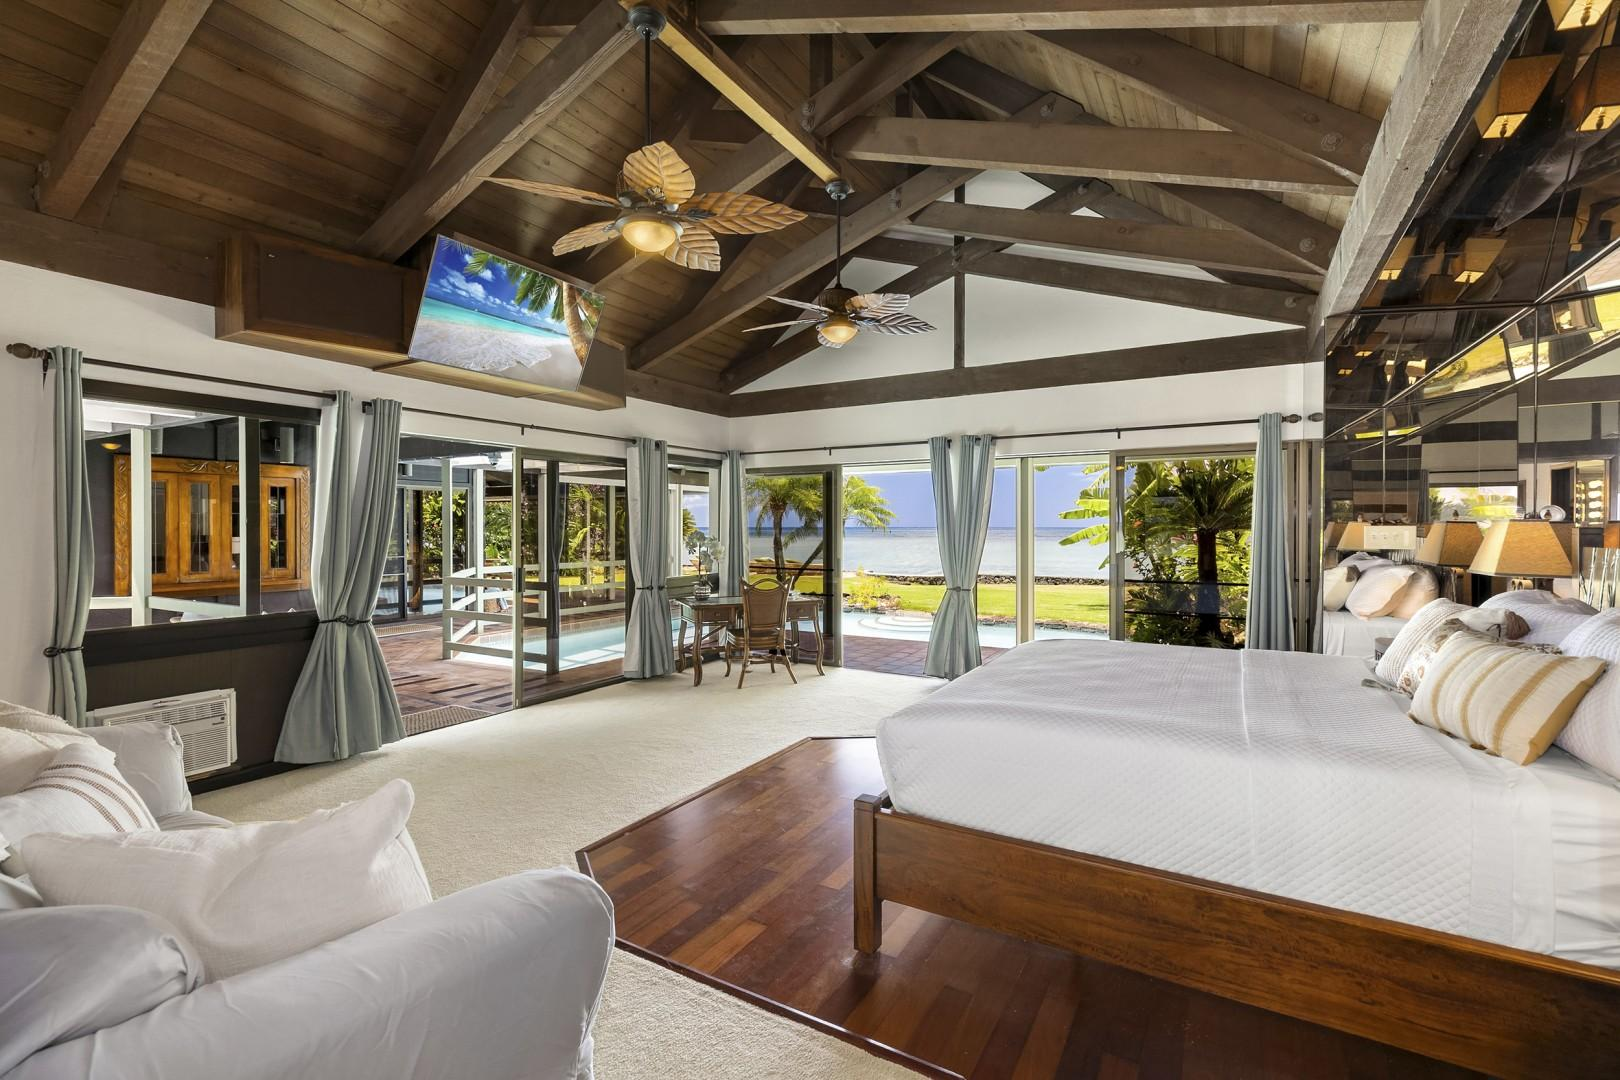 Master Suite has ensuite bathroom, vaulted ceilings, sofa, a/c, tv, desk and poolside lanai.